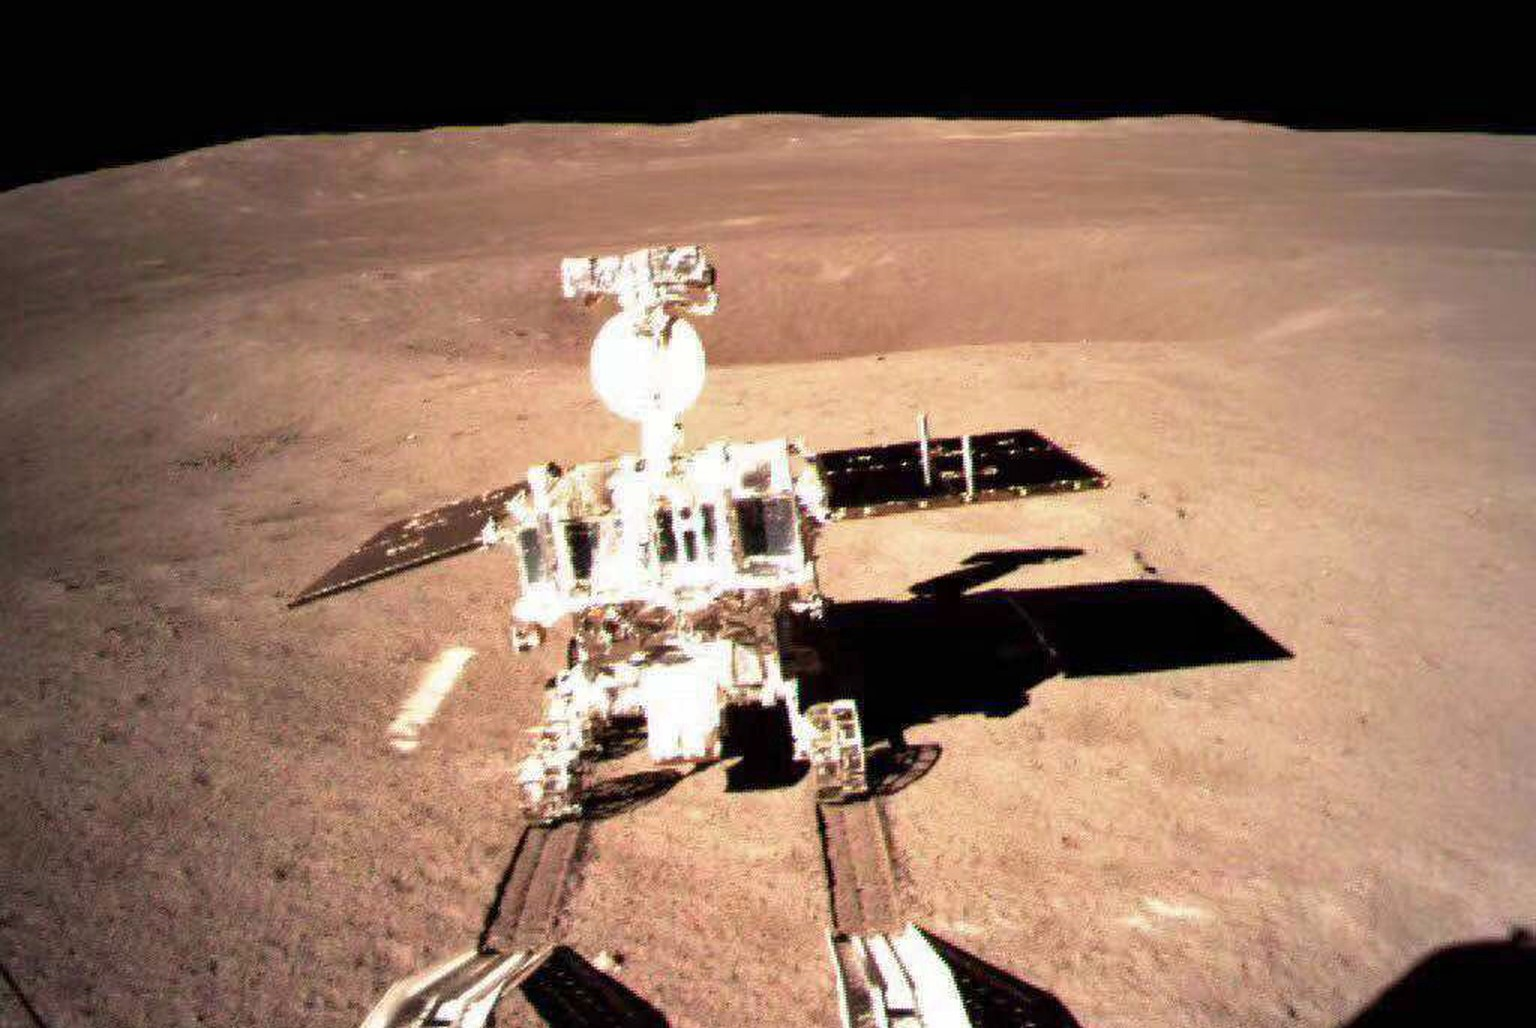 epa07261770 A handout image provided by the China National Space Administration (CNSA) on 04 January 2019 shows the lunar rover Yutu-2 or Jade Rabbit 2 on the far side of the moon taken by China's Chang'e-4 lunar probe on 03 January 2019. China's Chang'e-4 lunar probe made the historic first ever soft landing on the far side of the moon on 03 January 2019 at 10.26am Beijing time (0226 GMT). It is the first spacecraft soft-landing on the moon's uncharted side that was never explored or visible from Earth.  EPA/CNSA / HANDOUT EDITORIAL USE ONLY/NO SALES HANDOUT EDITORIAL USE ONLY/NO SALES